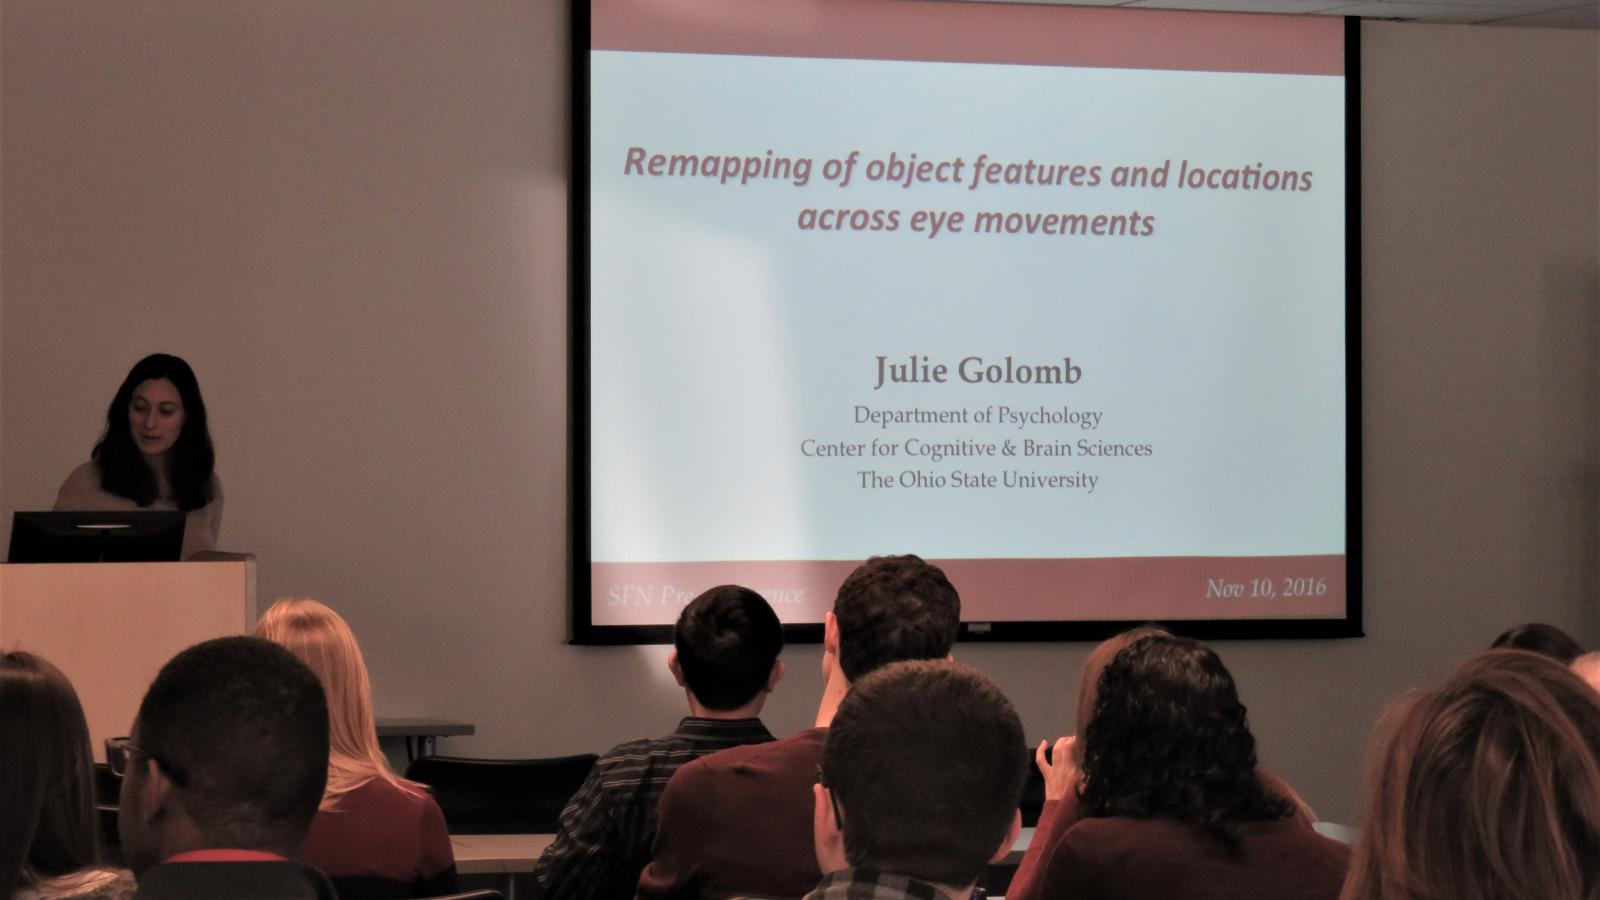 Julie Golomb presenting at a CCBBI users meeting